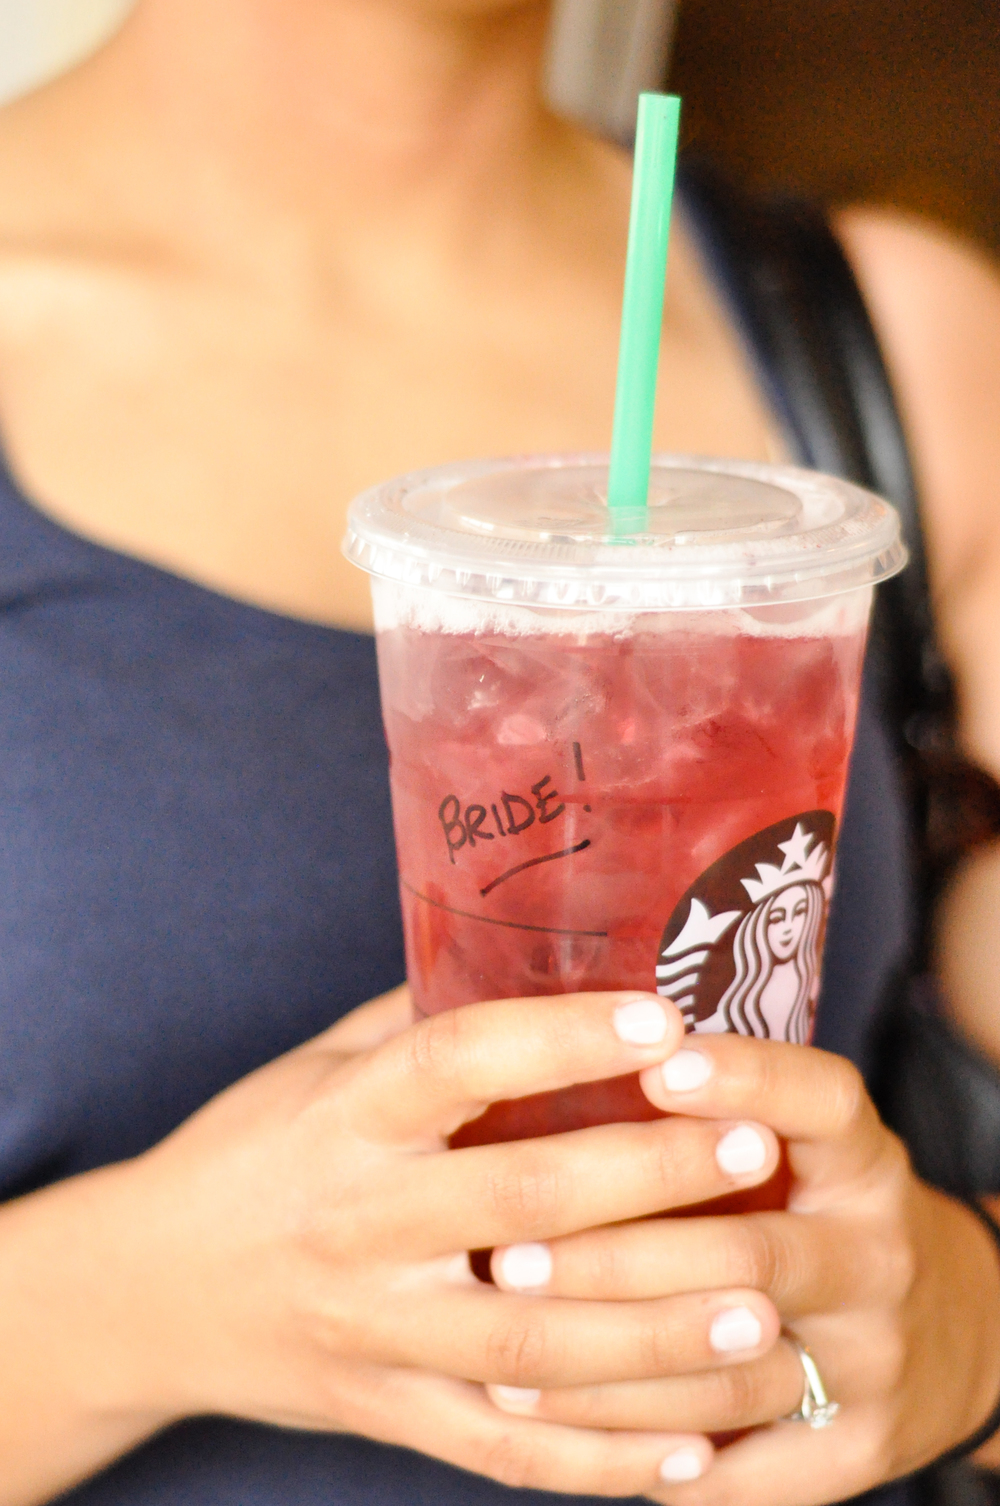 No bride should ever turn down free Starbucks on her big day.